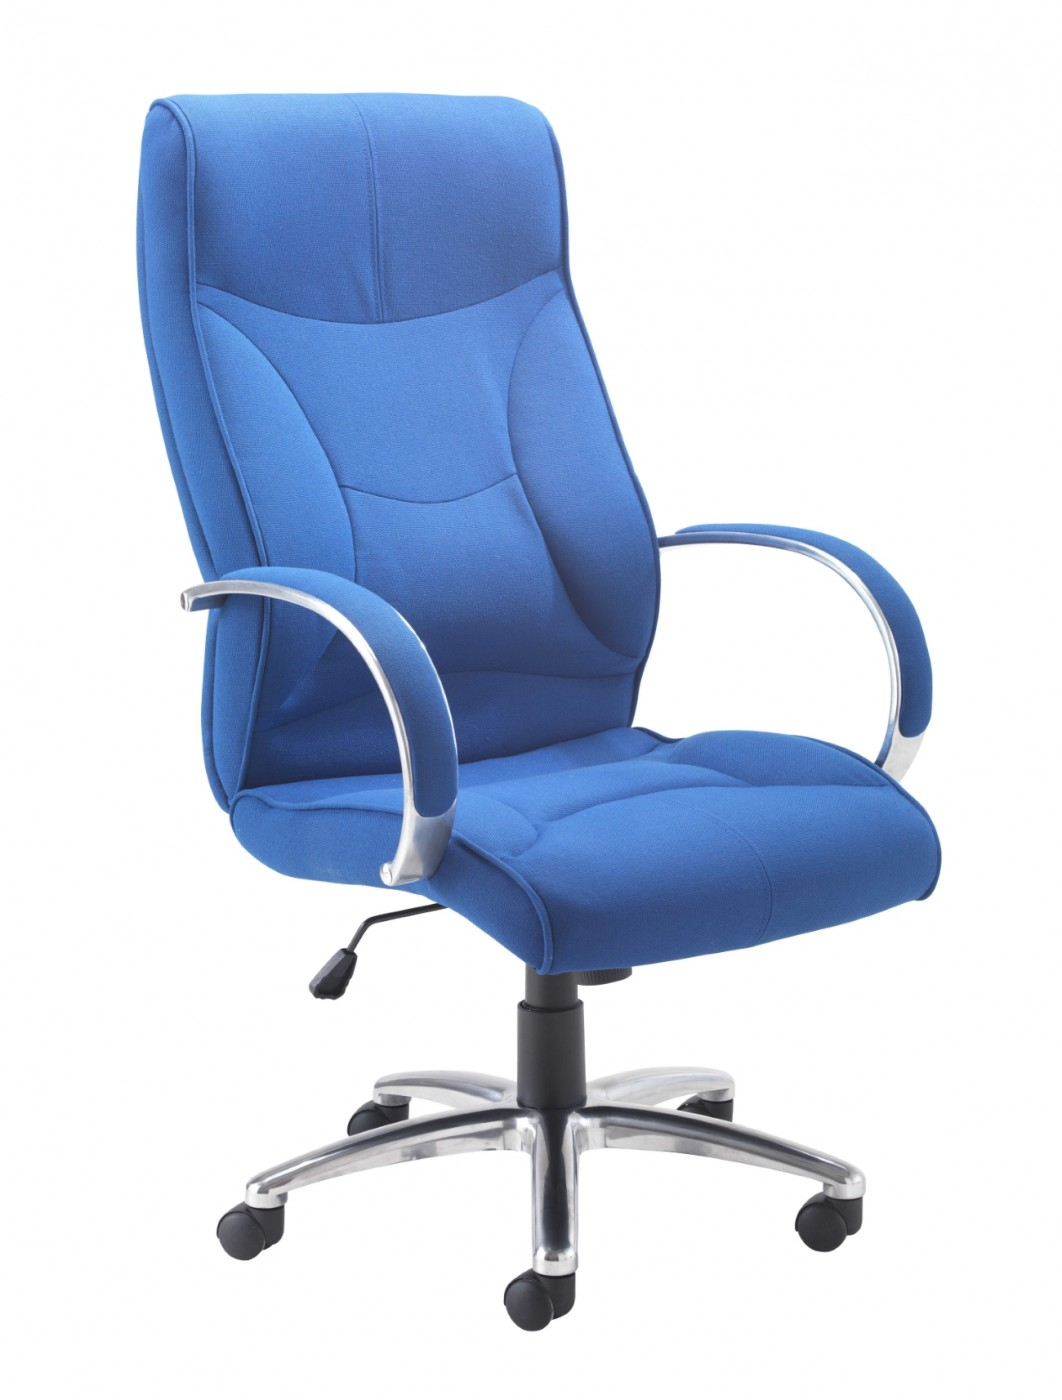 fabric office chairs uk best chair for nursery tc whist executive